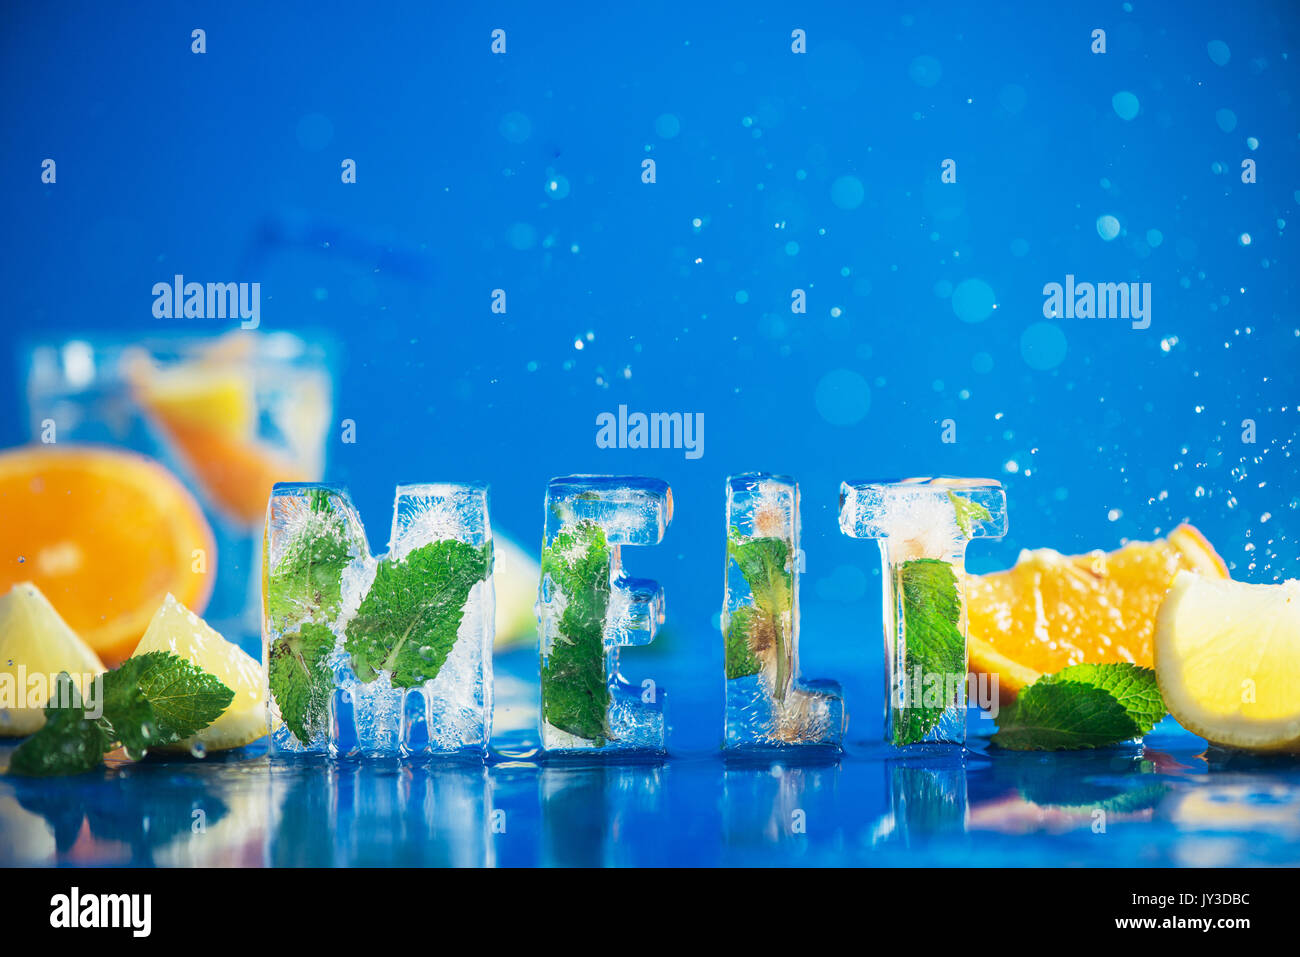 Ice cube lettering with frozen mint leaves, lemon slices and oranges on a blue background with water splashes. Text says Melt. - Stock Image